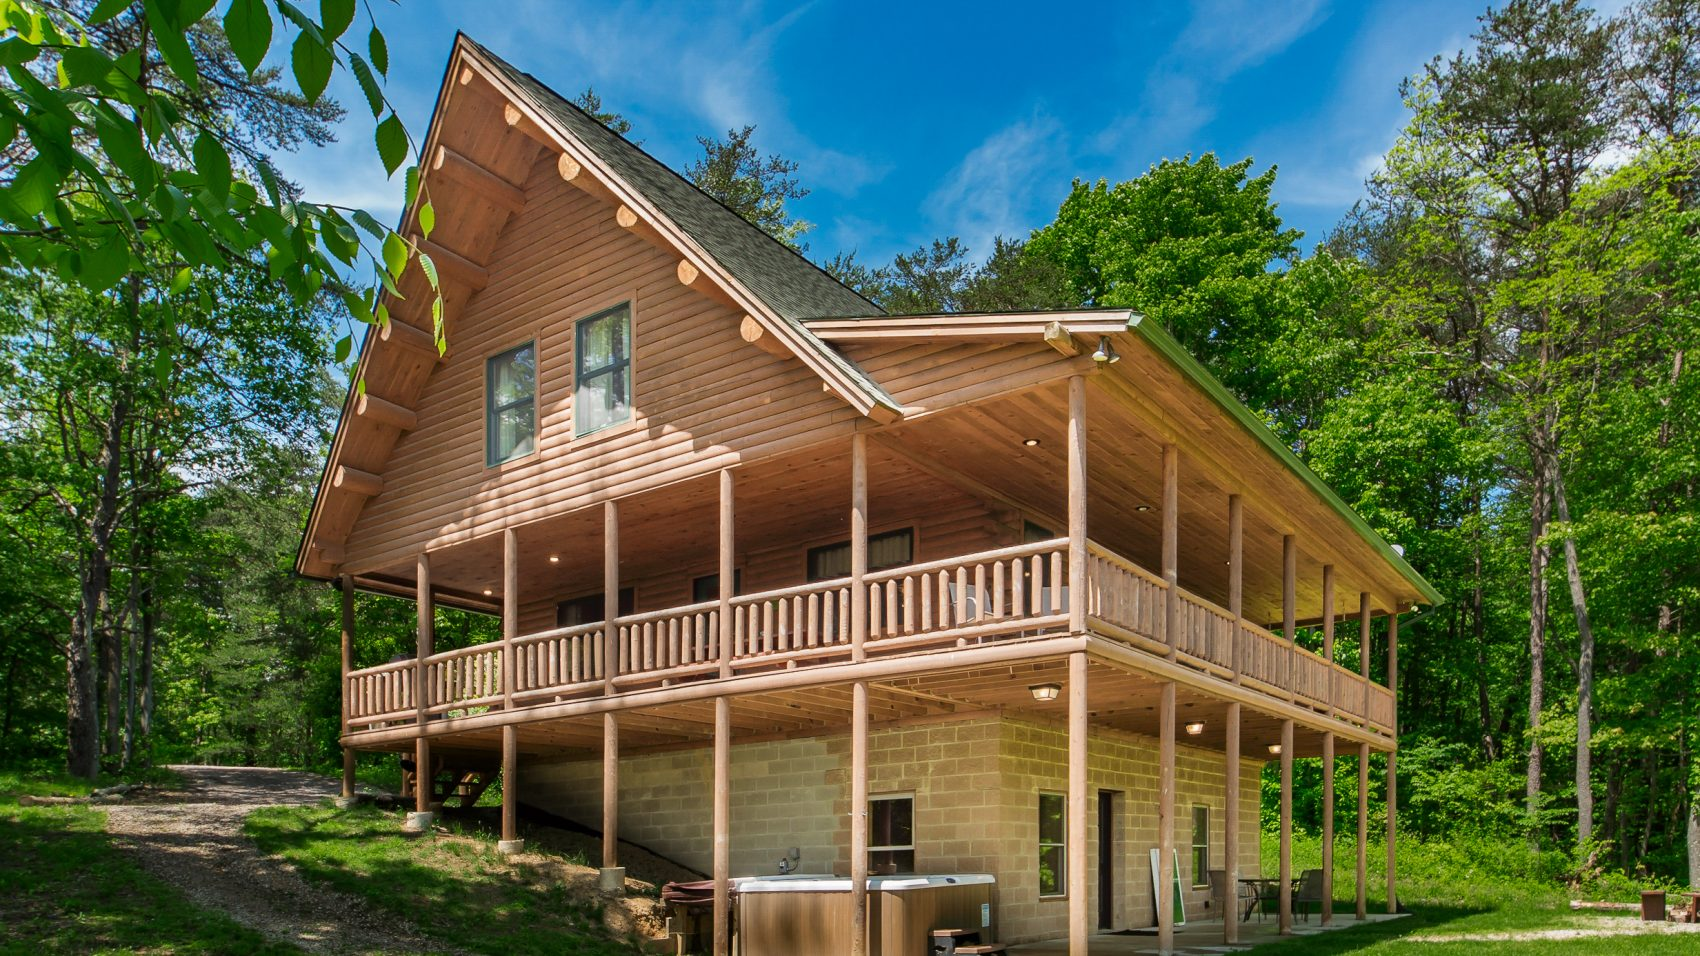 Stillwater-up to 19 guests   Cedar Grove Lodging and Events